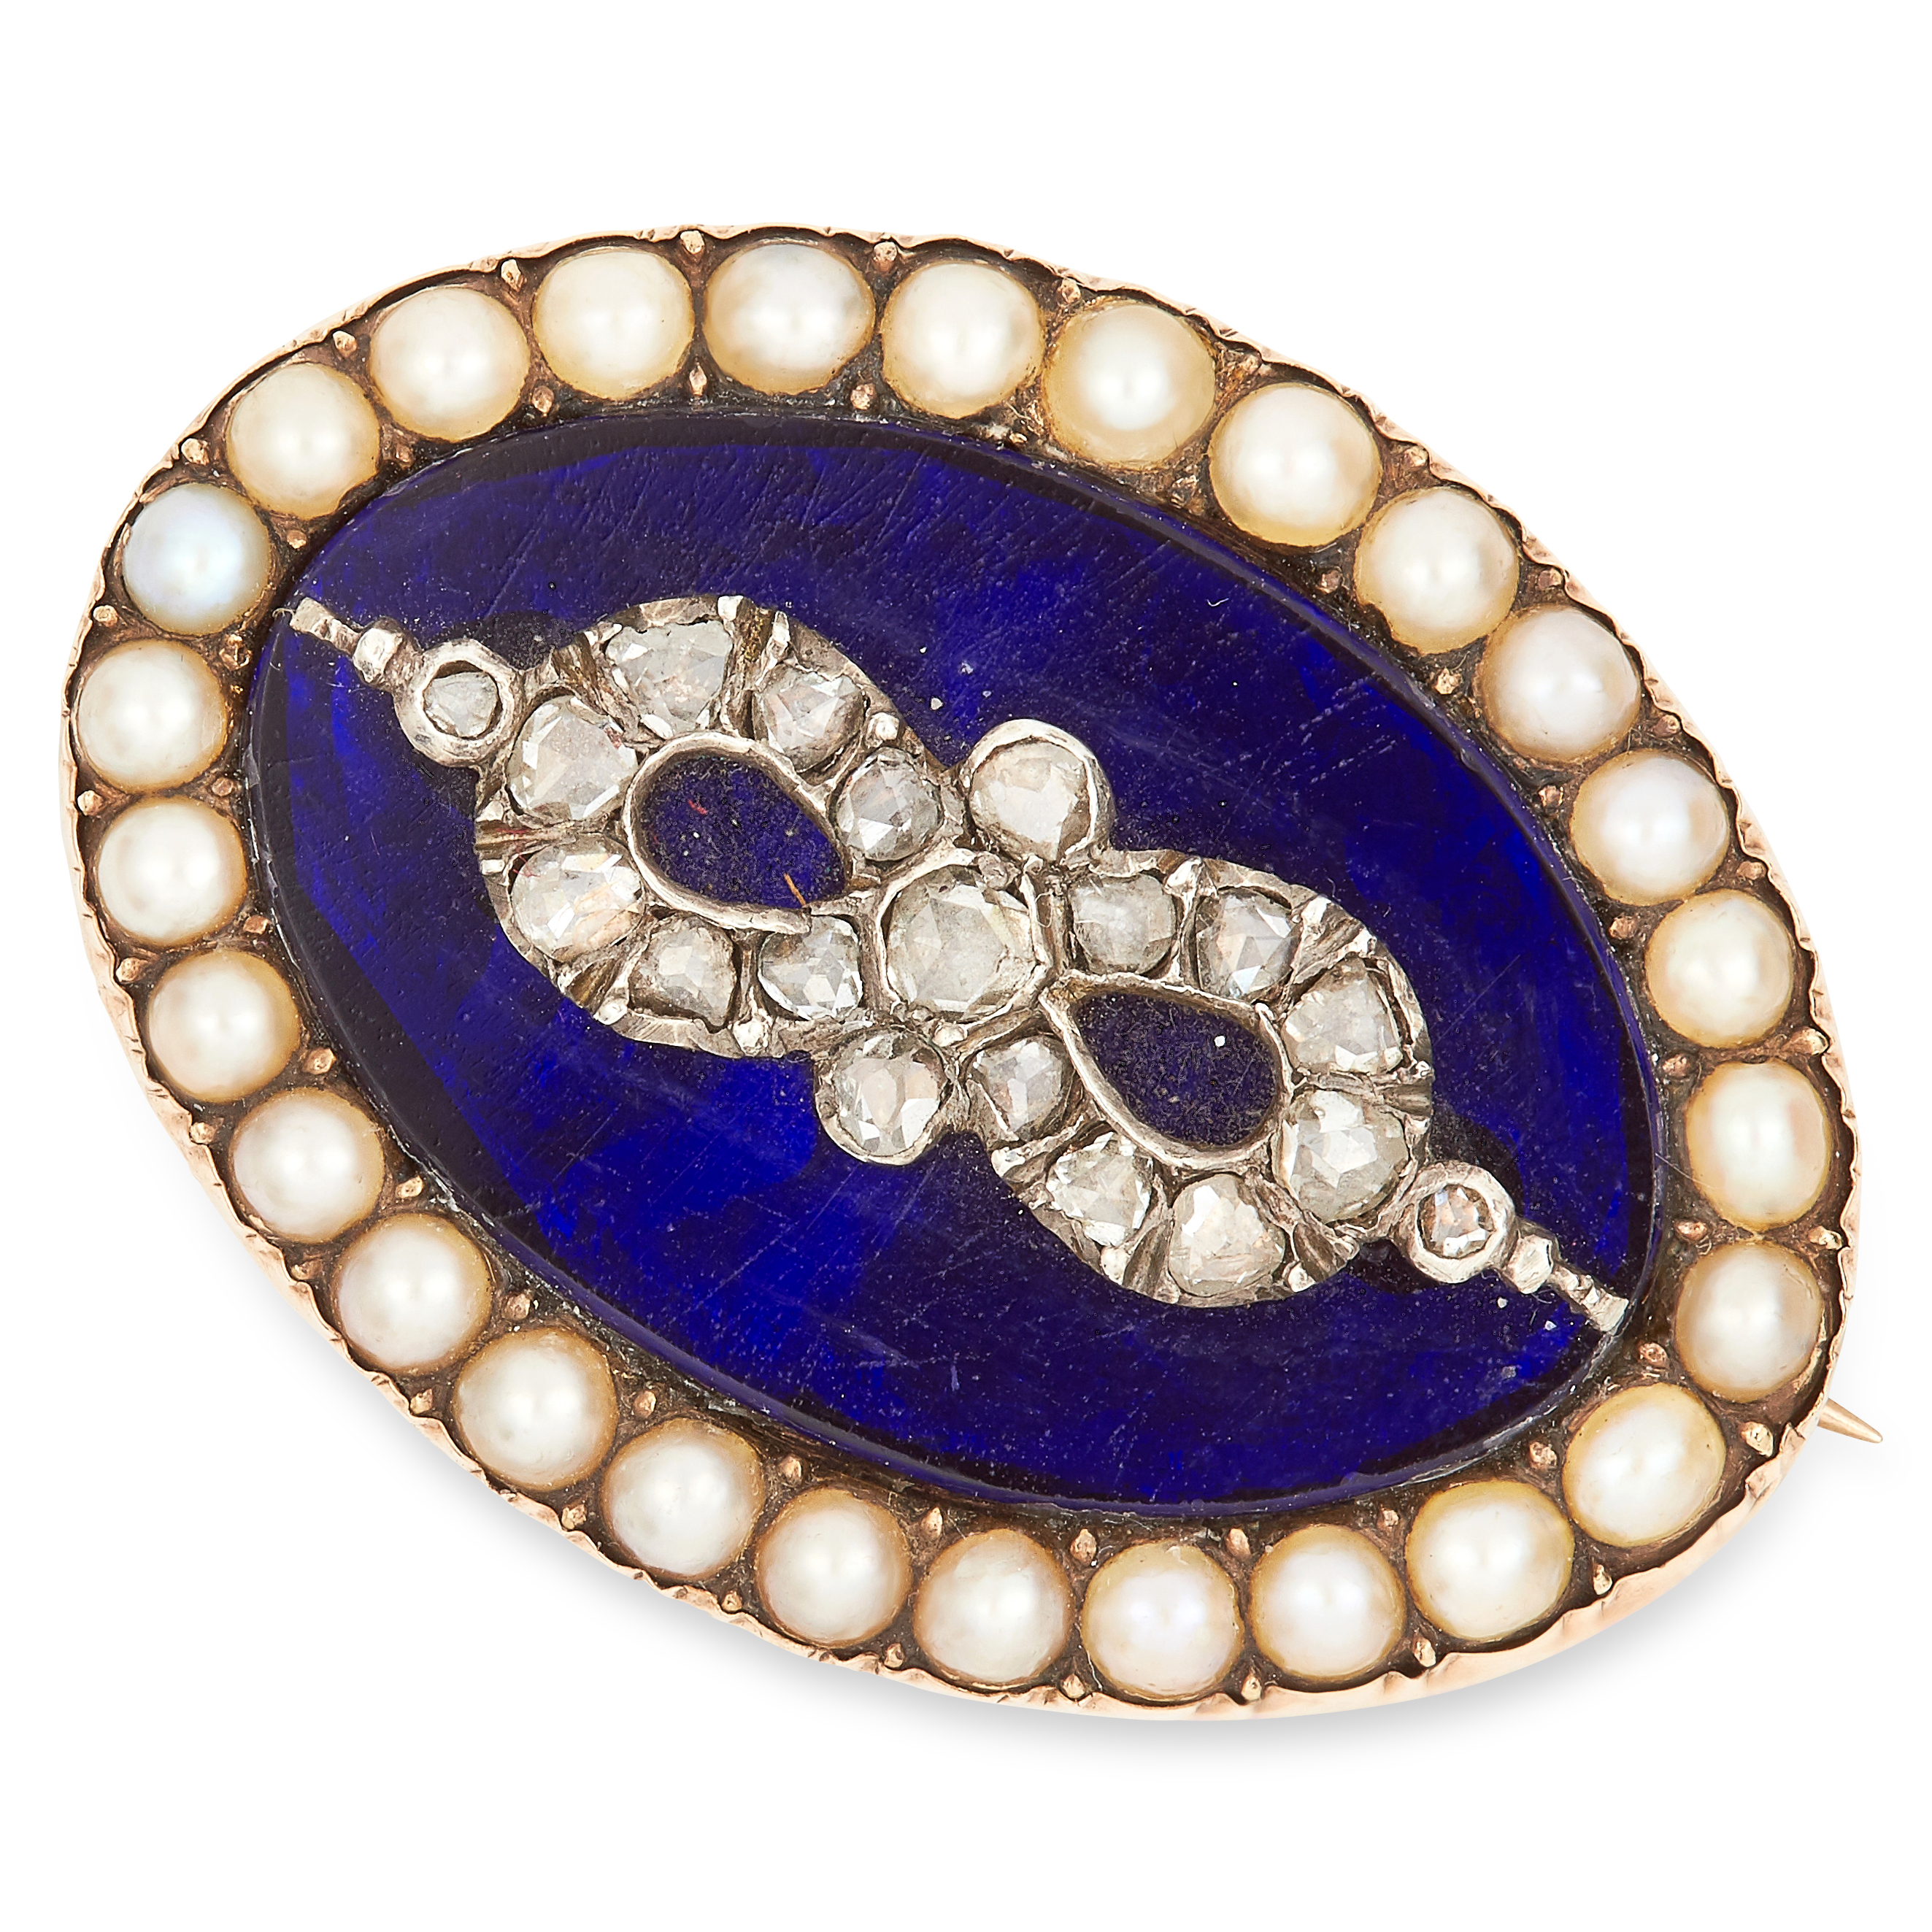 Los 56 - ANTIQUE PEARL, DIAMOND AND ENAMEL BROOCH set with blue enamel, seed pearls and rose cut diamonds,